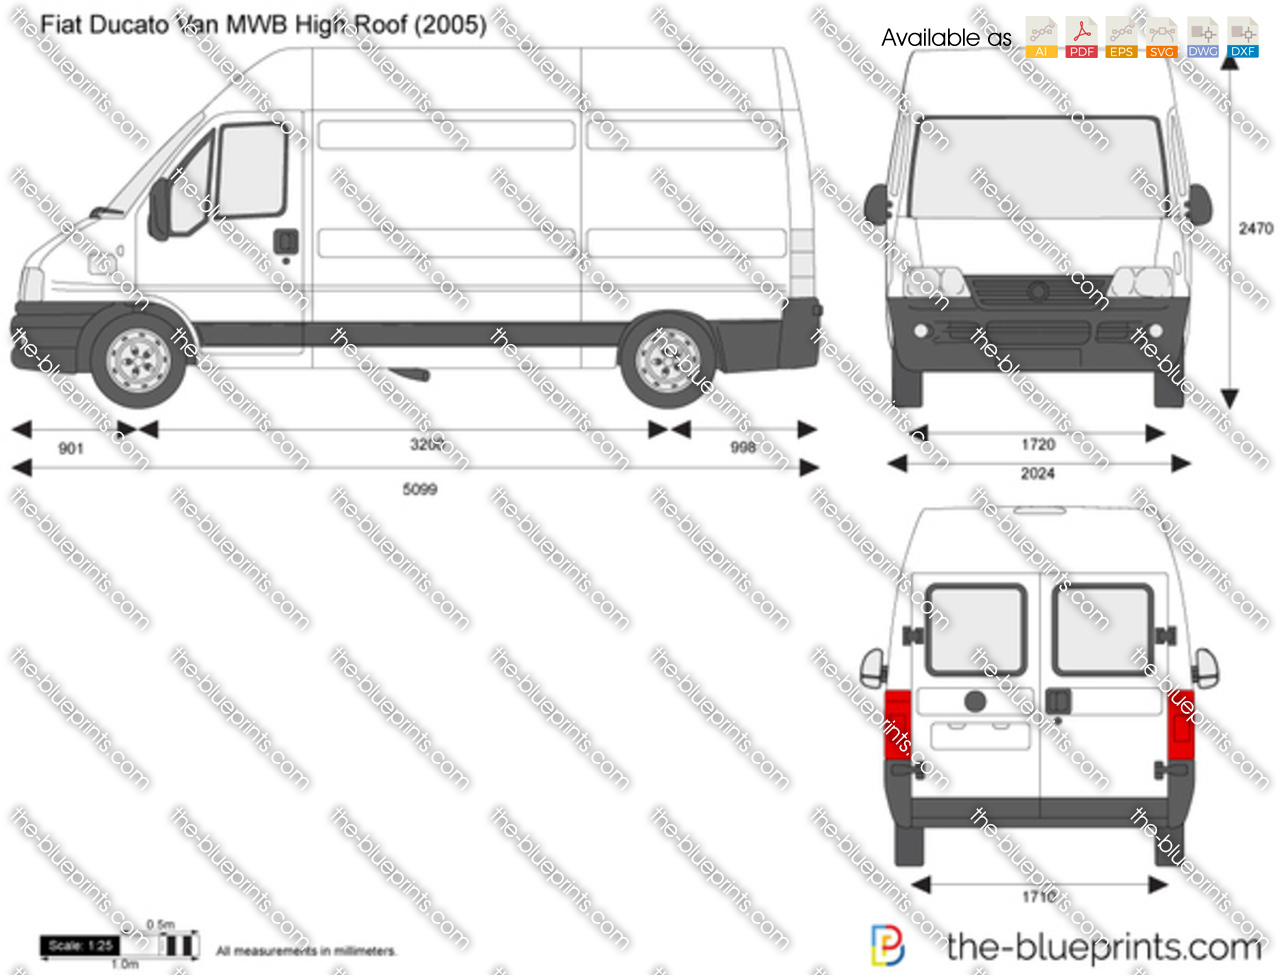 fiat ducato van mwb high roof vector drawing